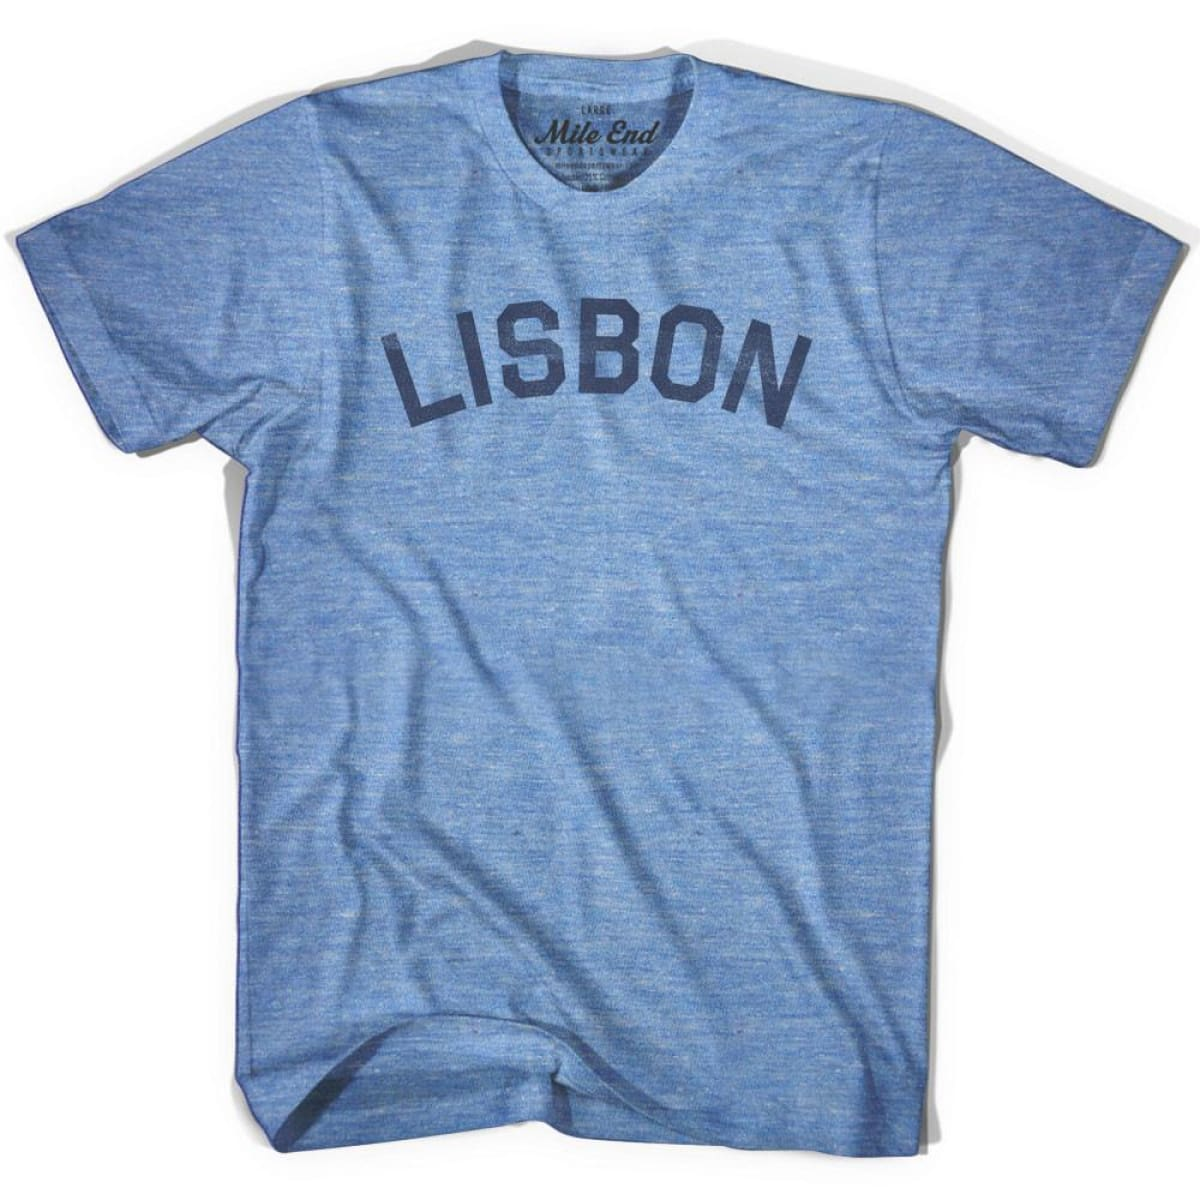 Lisbon City Vintage T-shirt - Athletic Blue / Adult X-Small - Mile End City